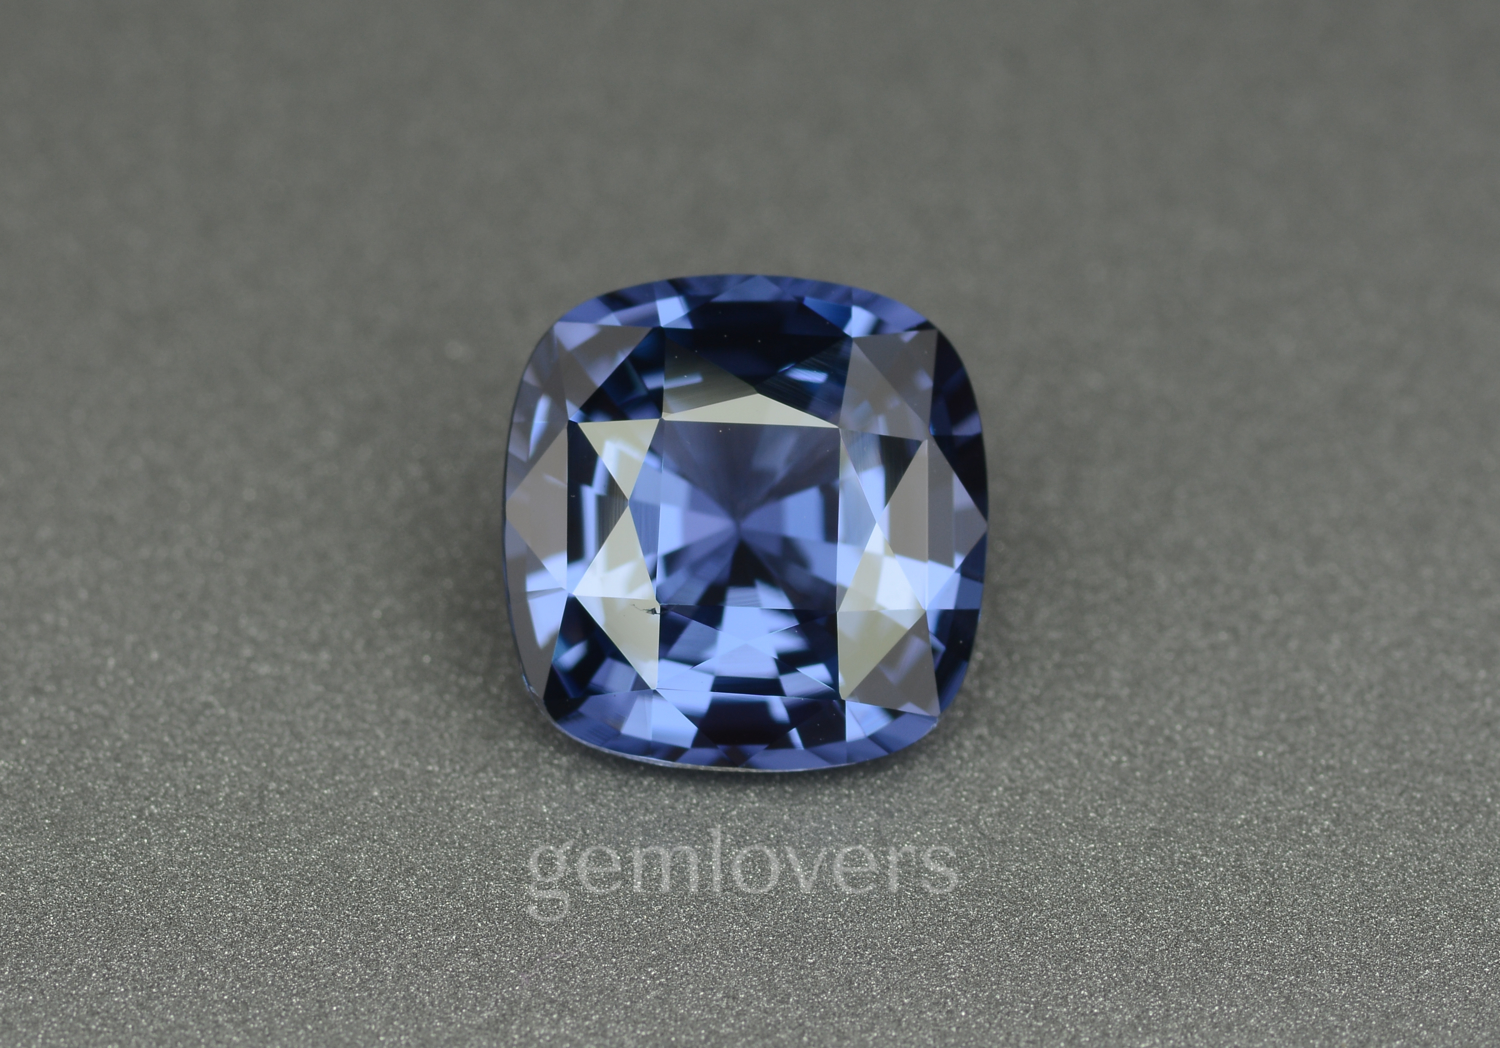 Blue spinel stone